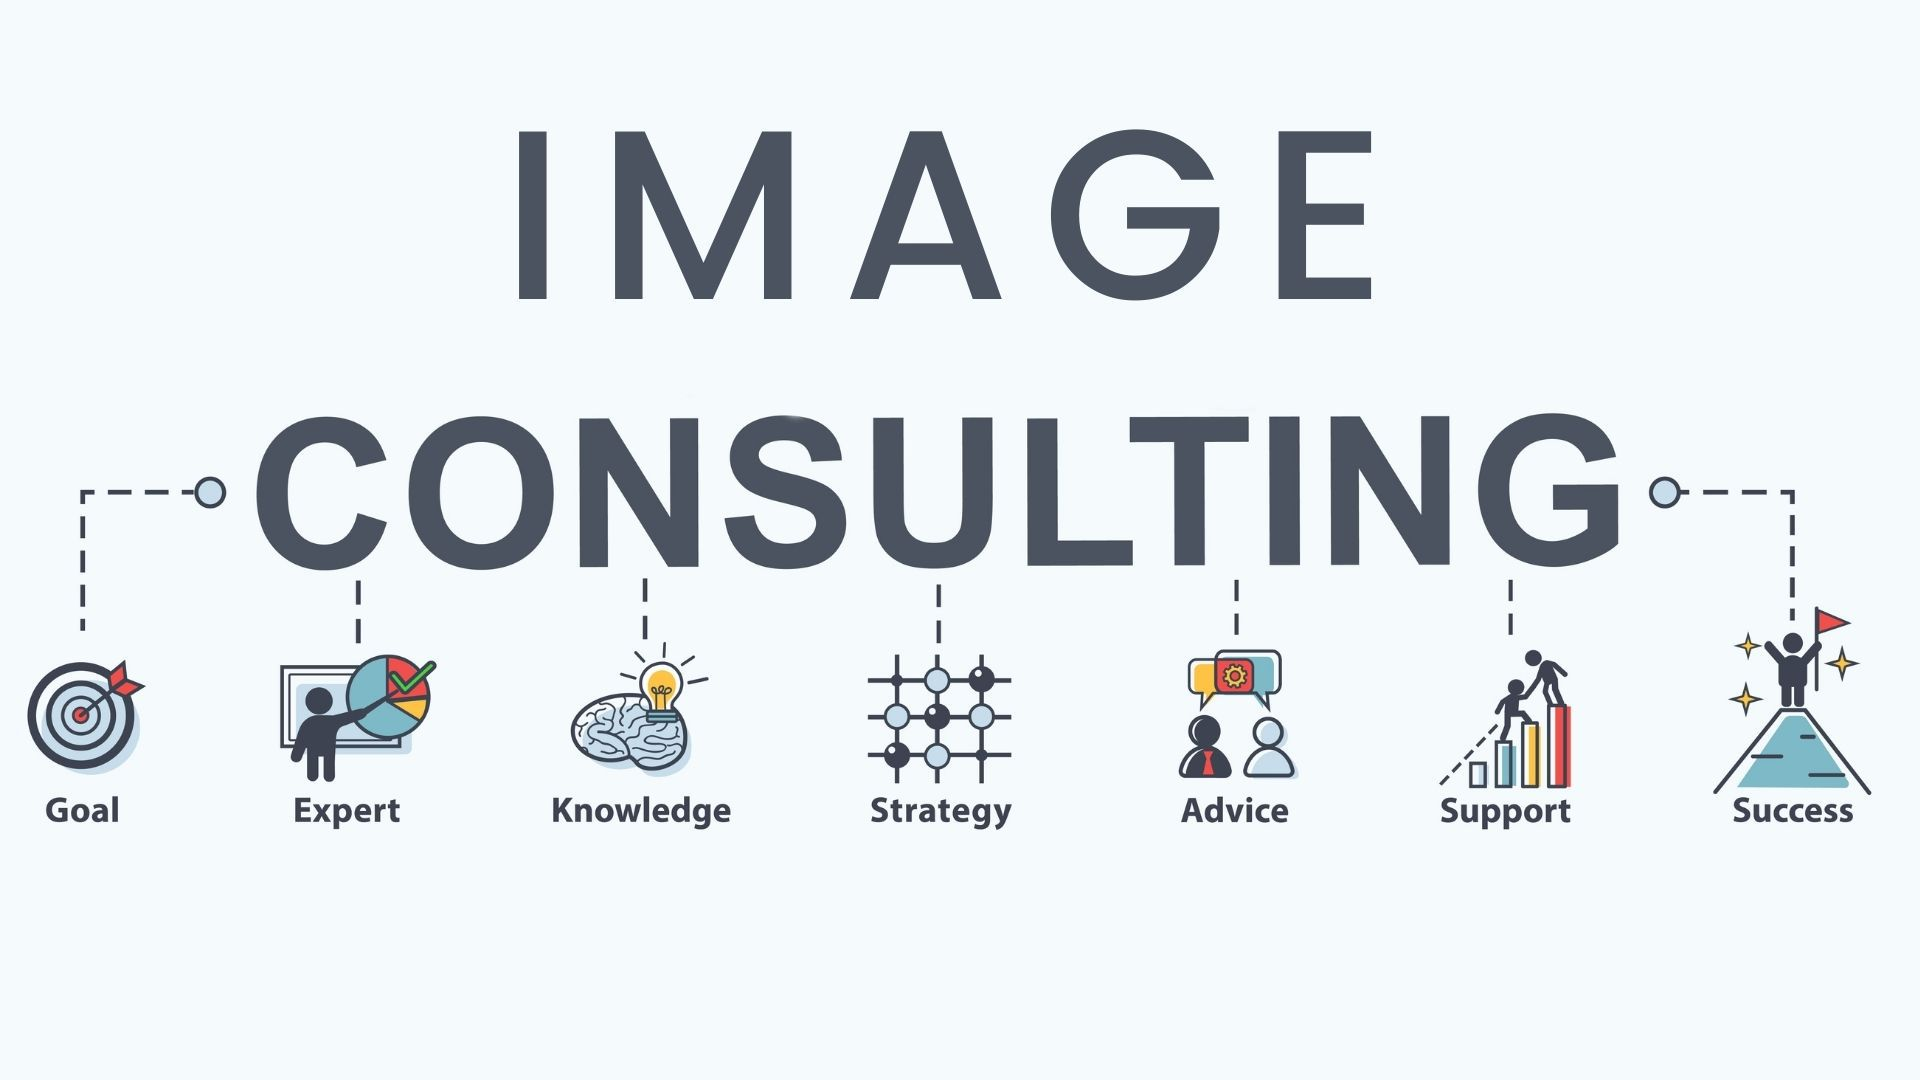 What is Image Consulting